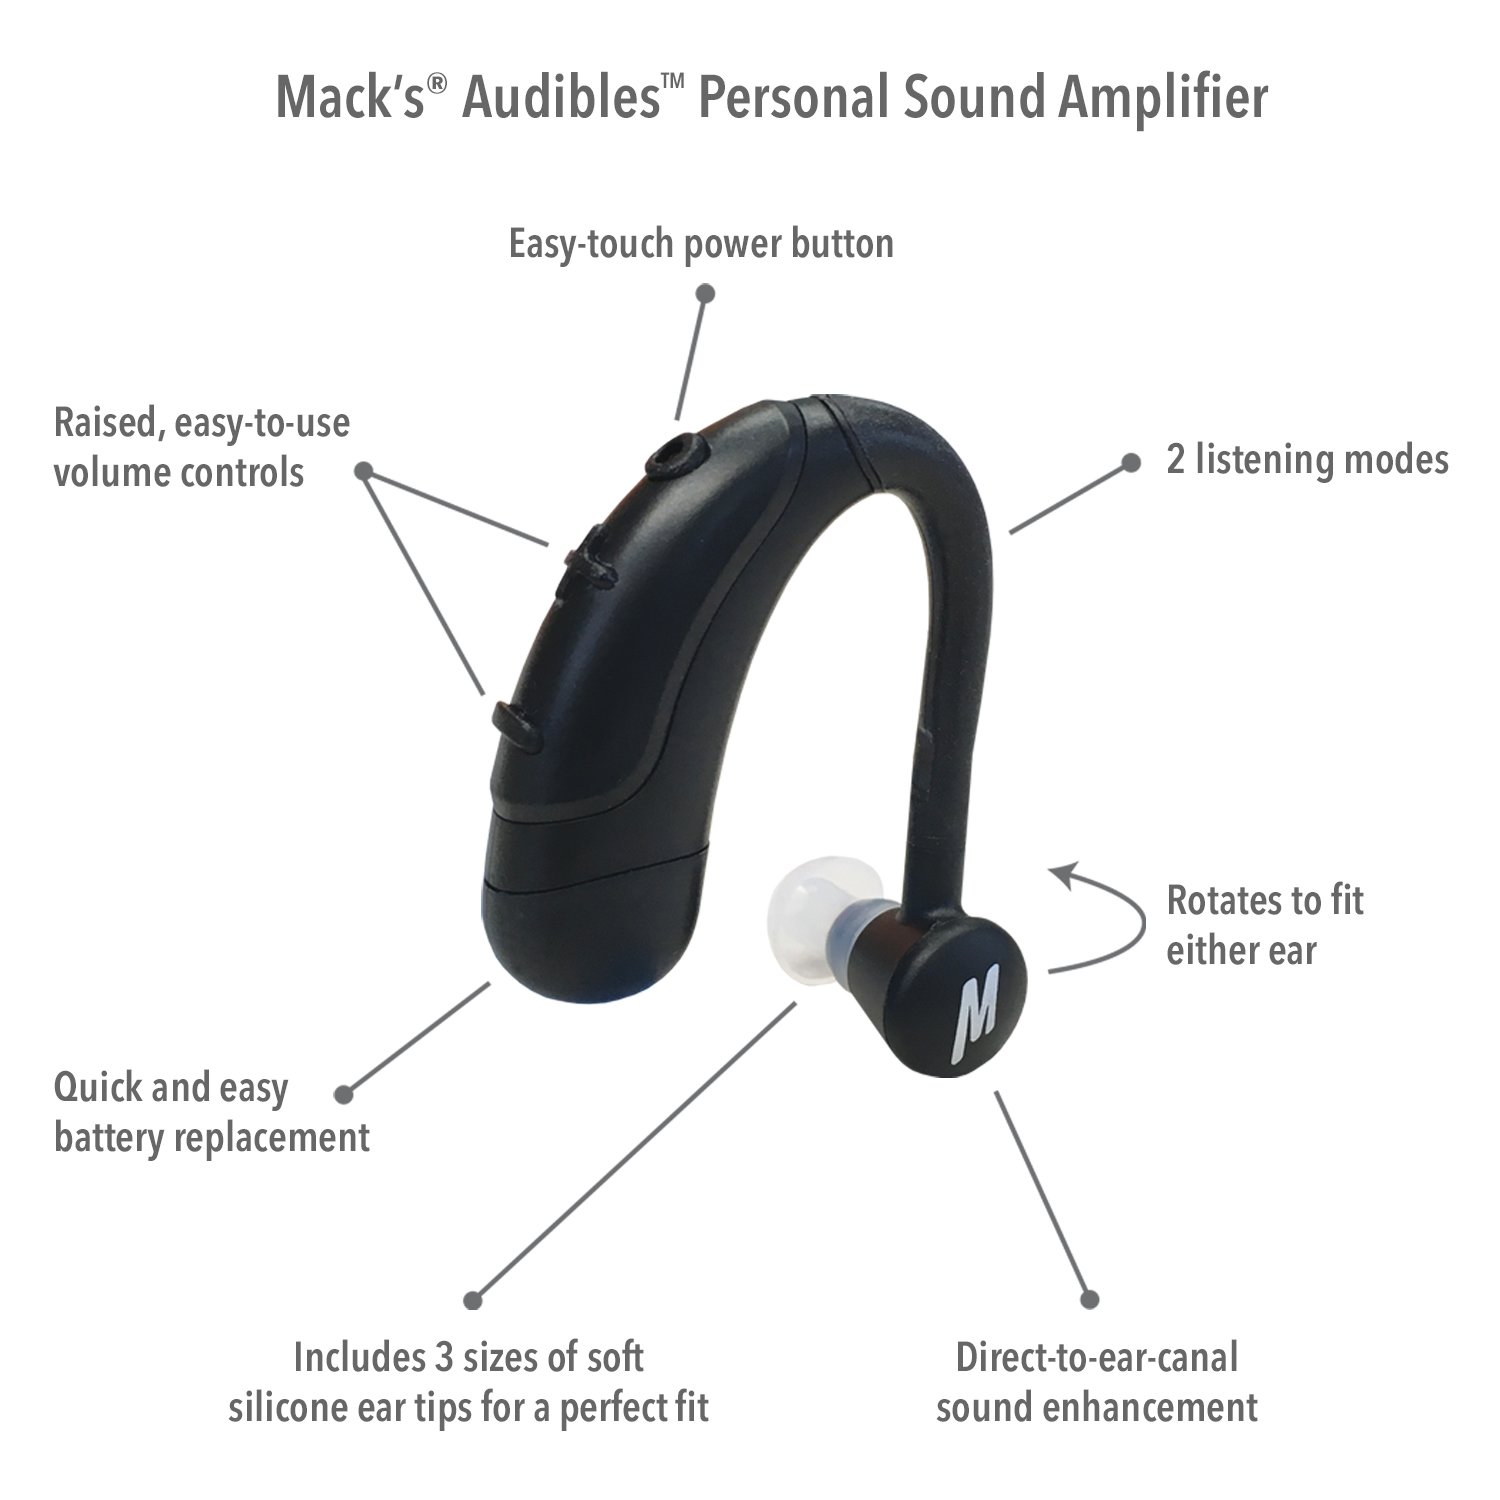 Macks Audibles Personal Sound Amplifier Digital Audio Enhancement For Analog Hearing With Volume Control Health Care